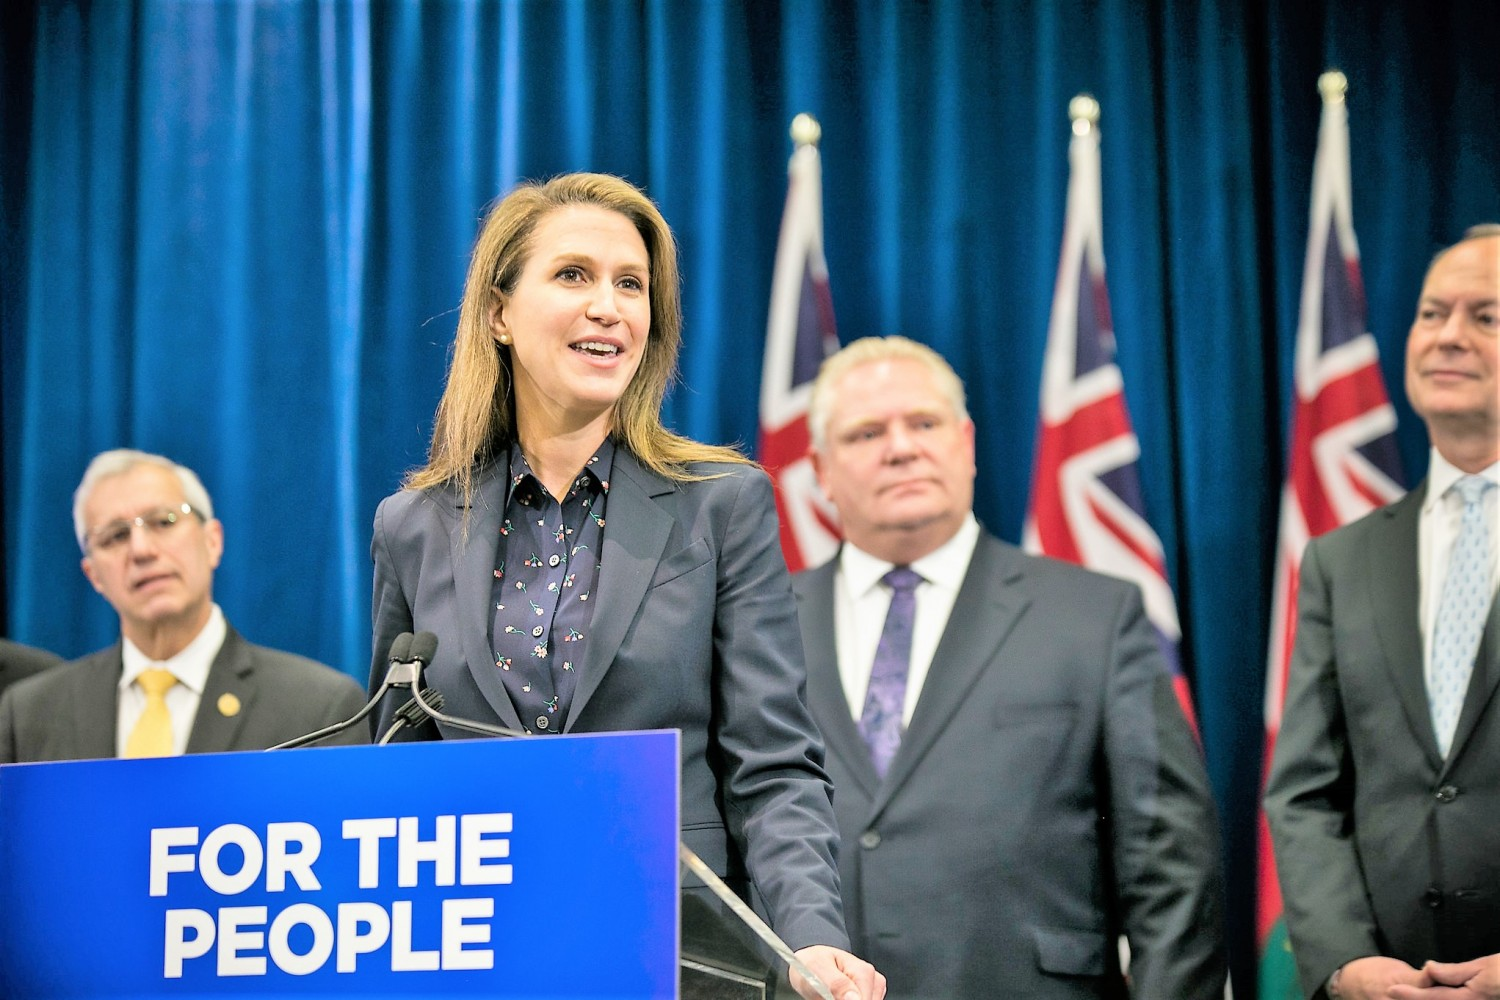 Ontario PCs to reduce penalties for police misconduct and narrow oversight of officers